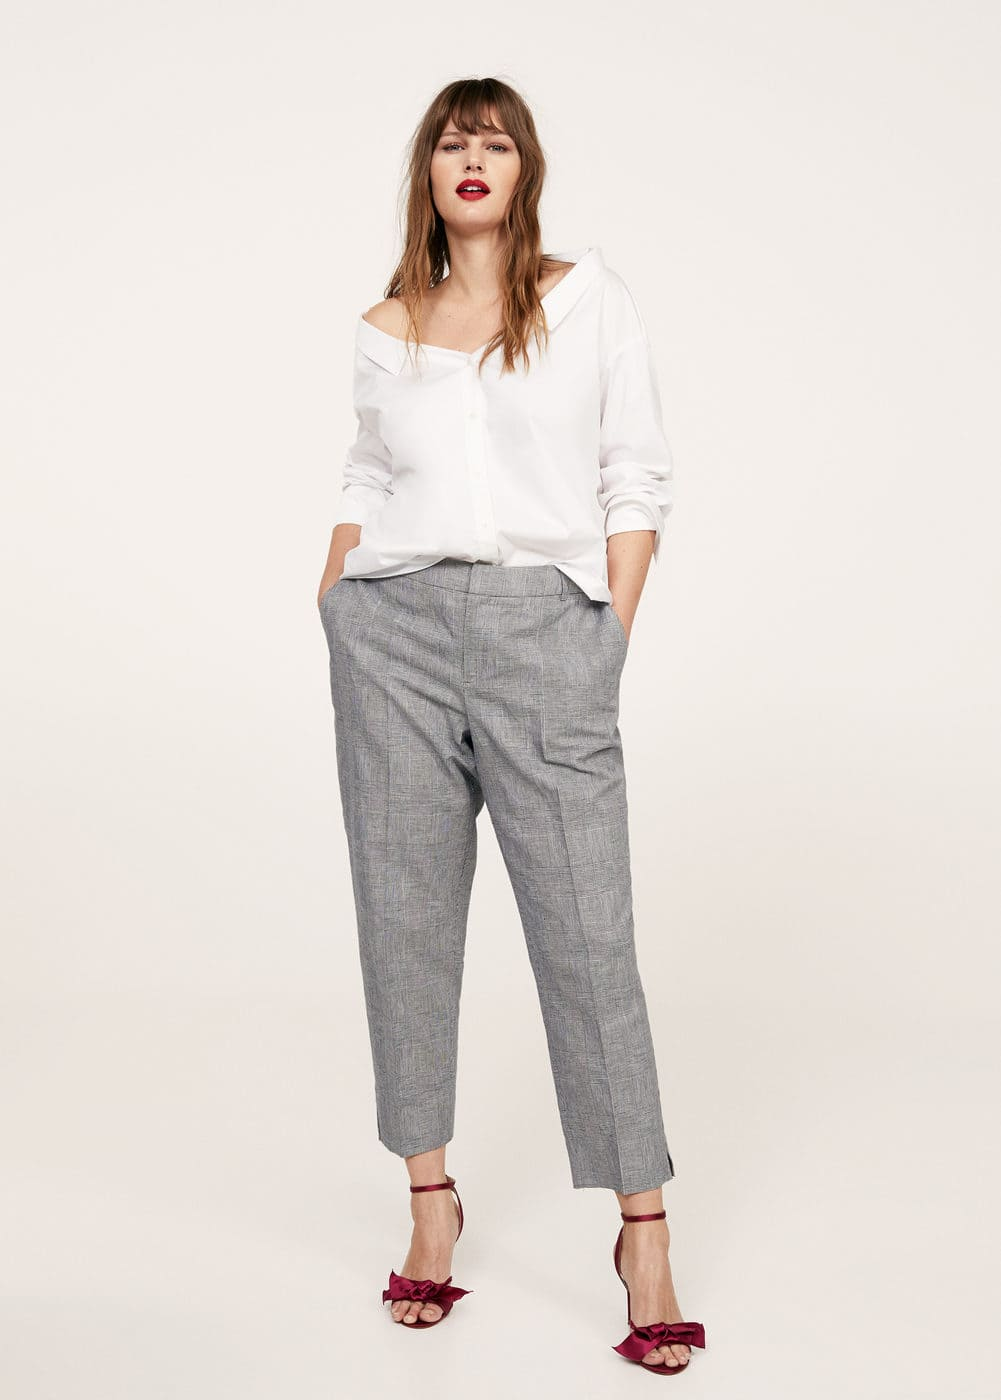 Prince of wales linen-blend trousers | VIOLETA BY MANGO